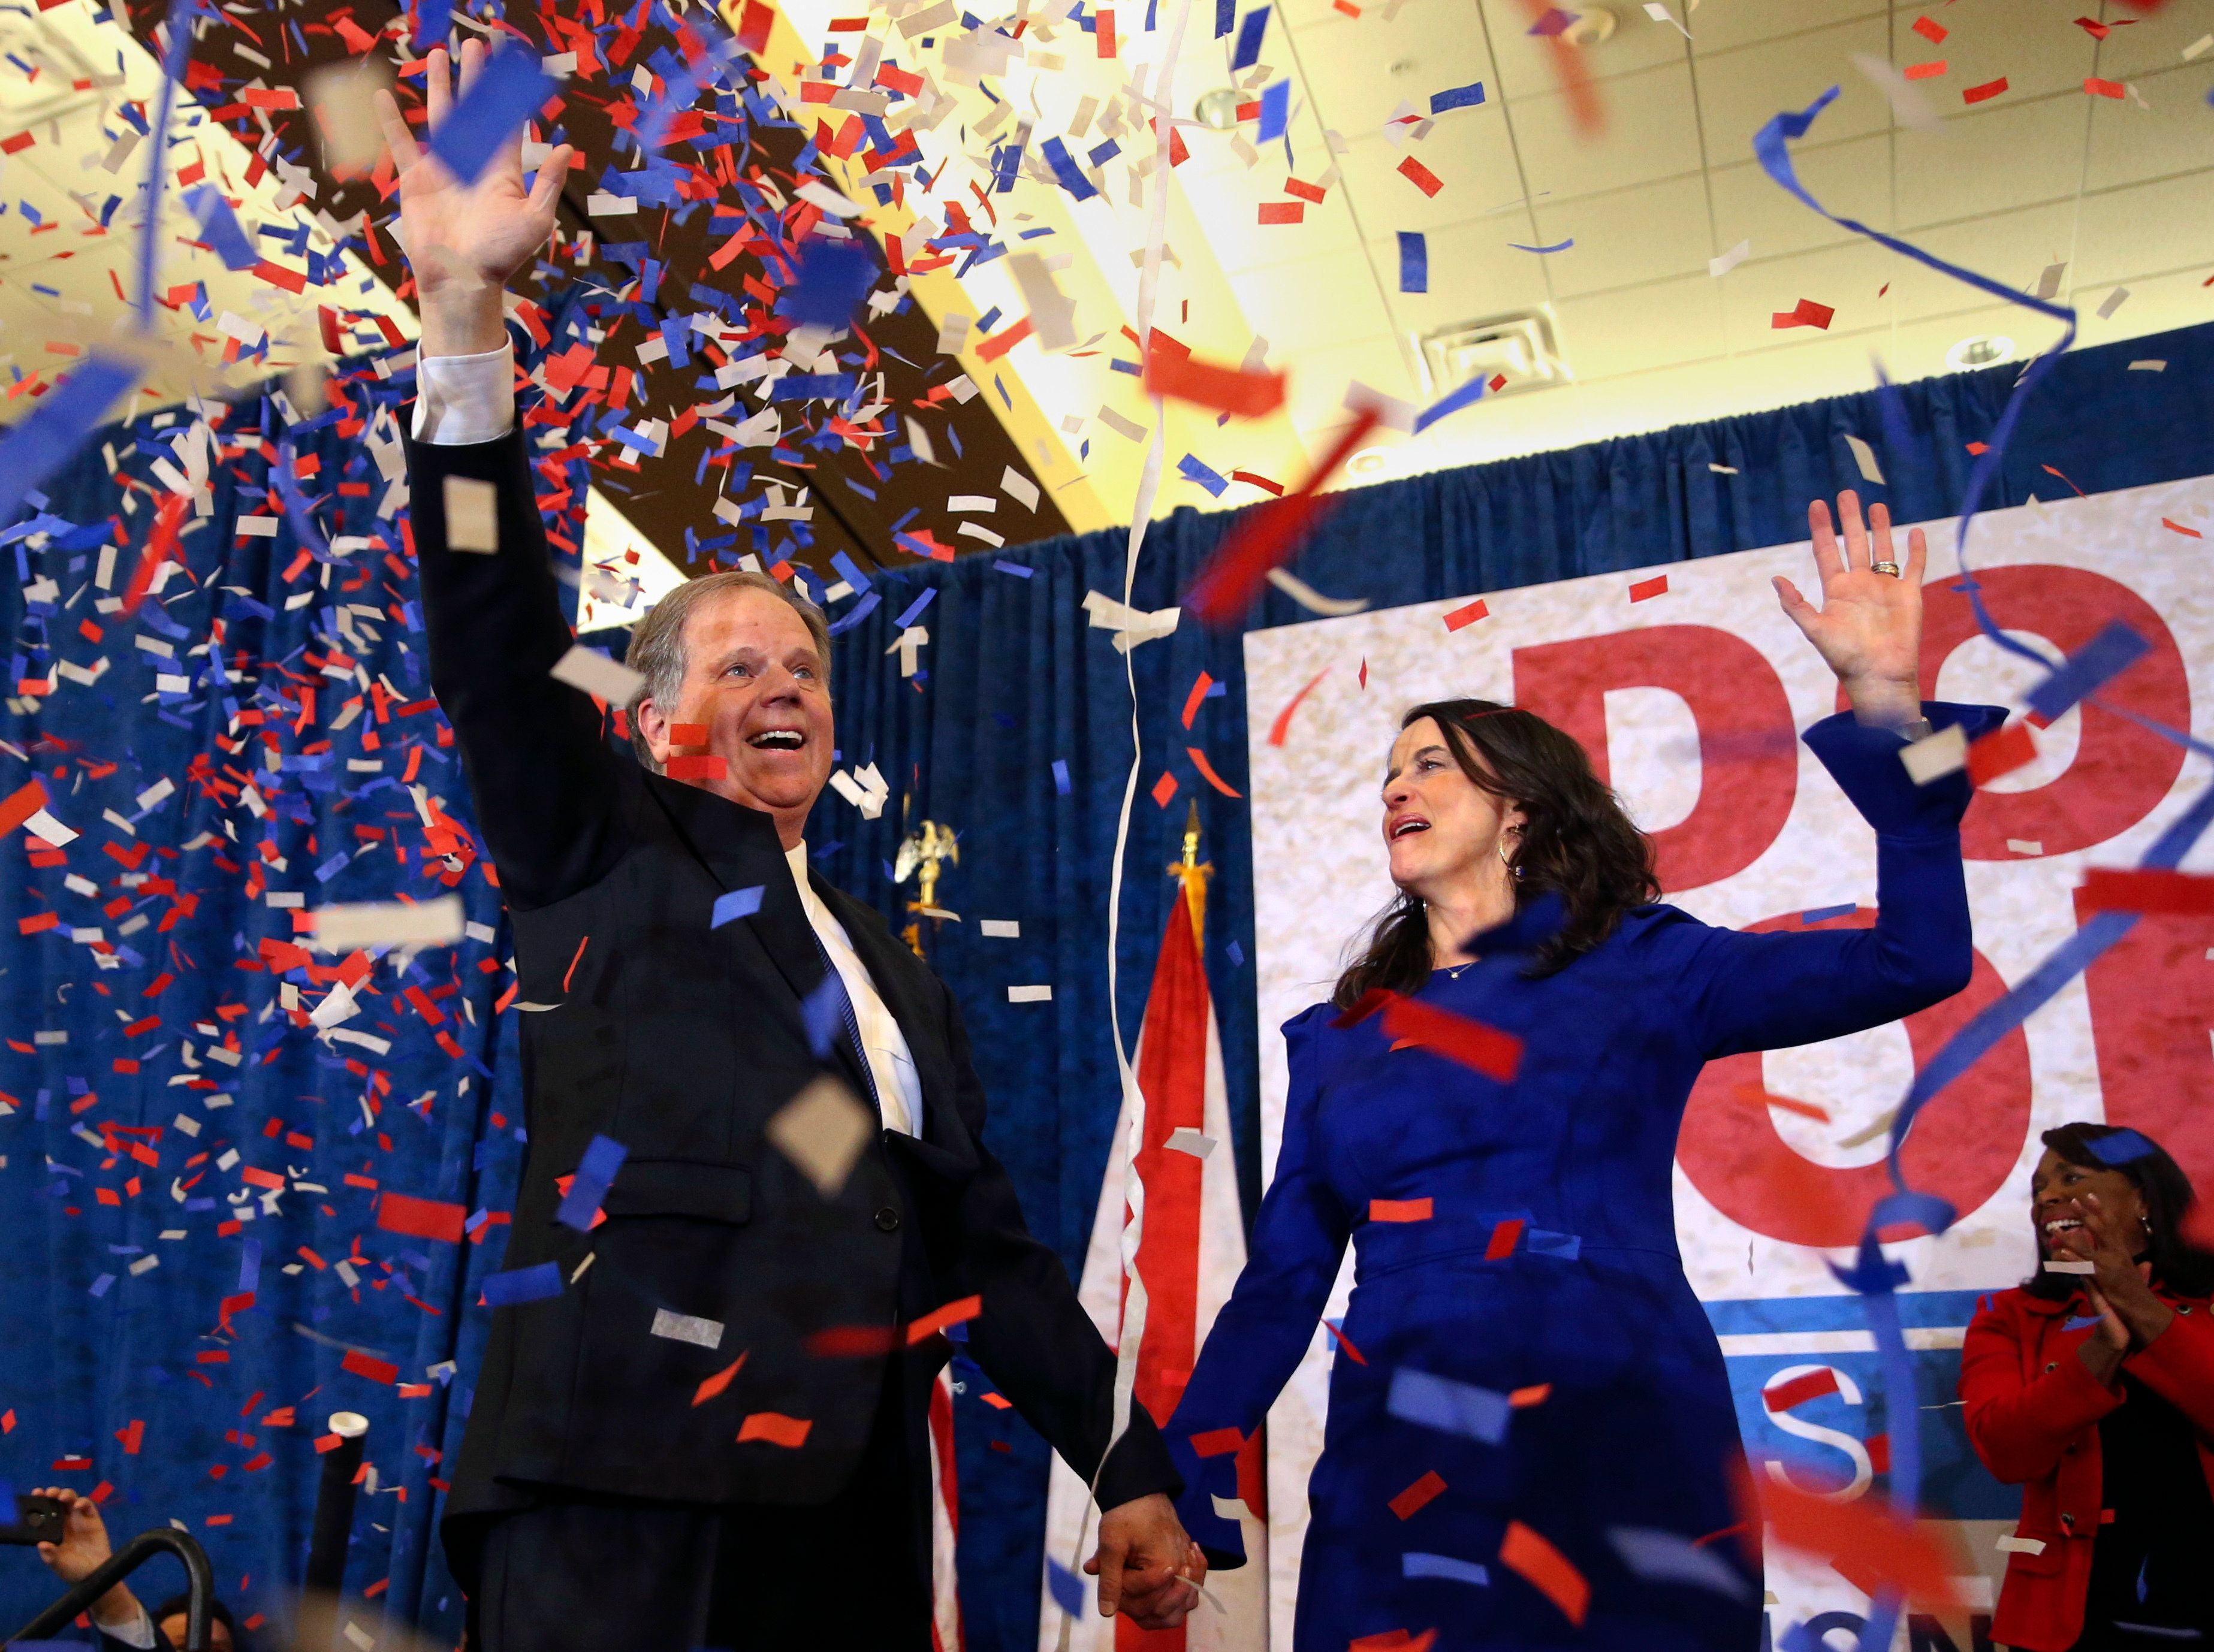 Democratic Sen. Doug Jones won the election by fewer than 22,000 votes.